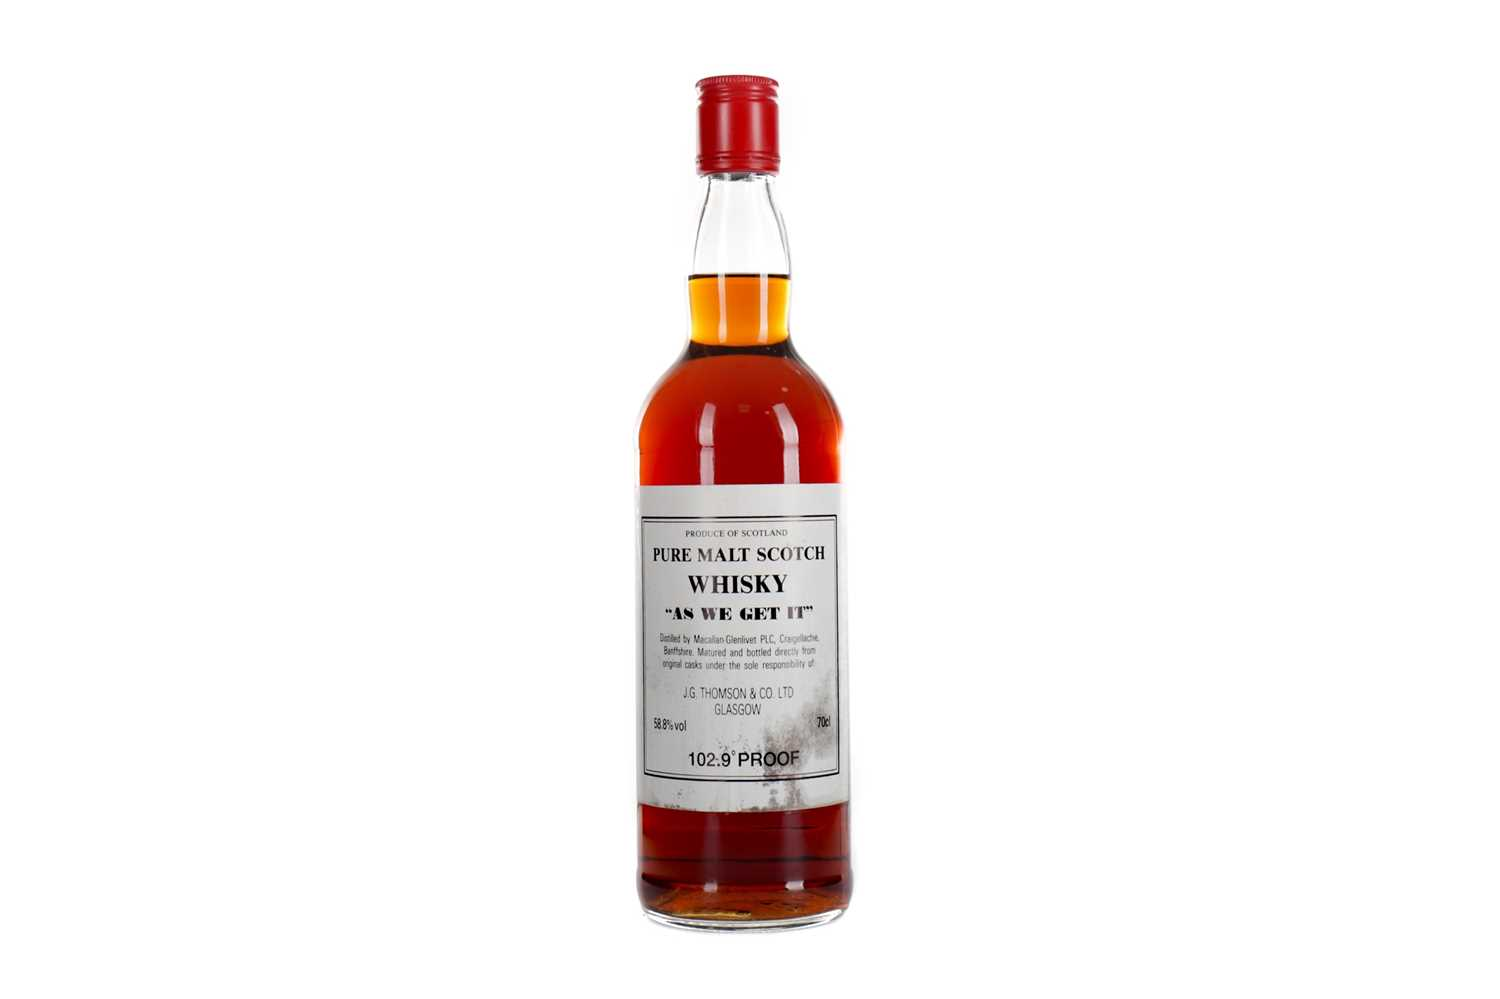 Lot 126 - MACALLAN-GLENLIVET 'AS WE GET IT' 102.9° PROOF